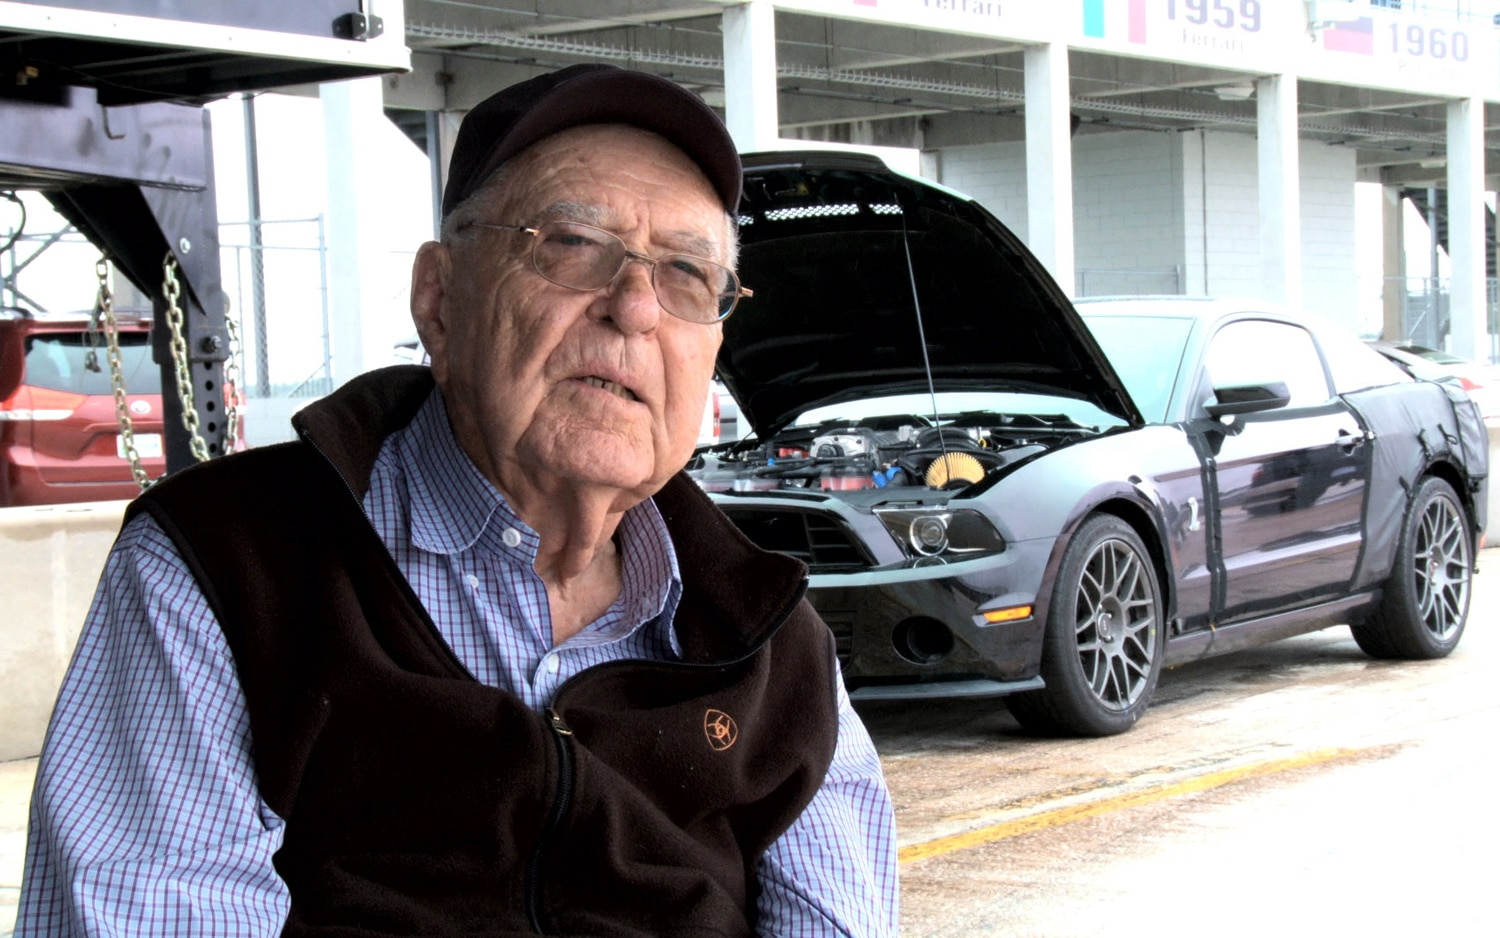 Carroll Shelby With Ford Shelby GT500 Durability Car1